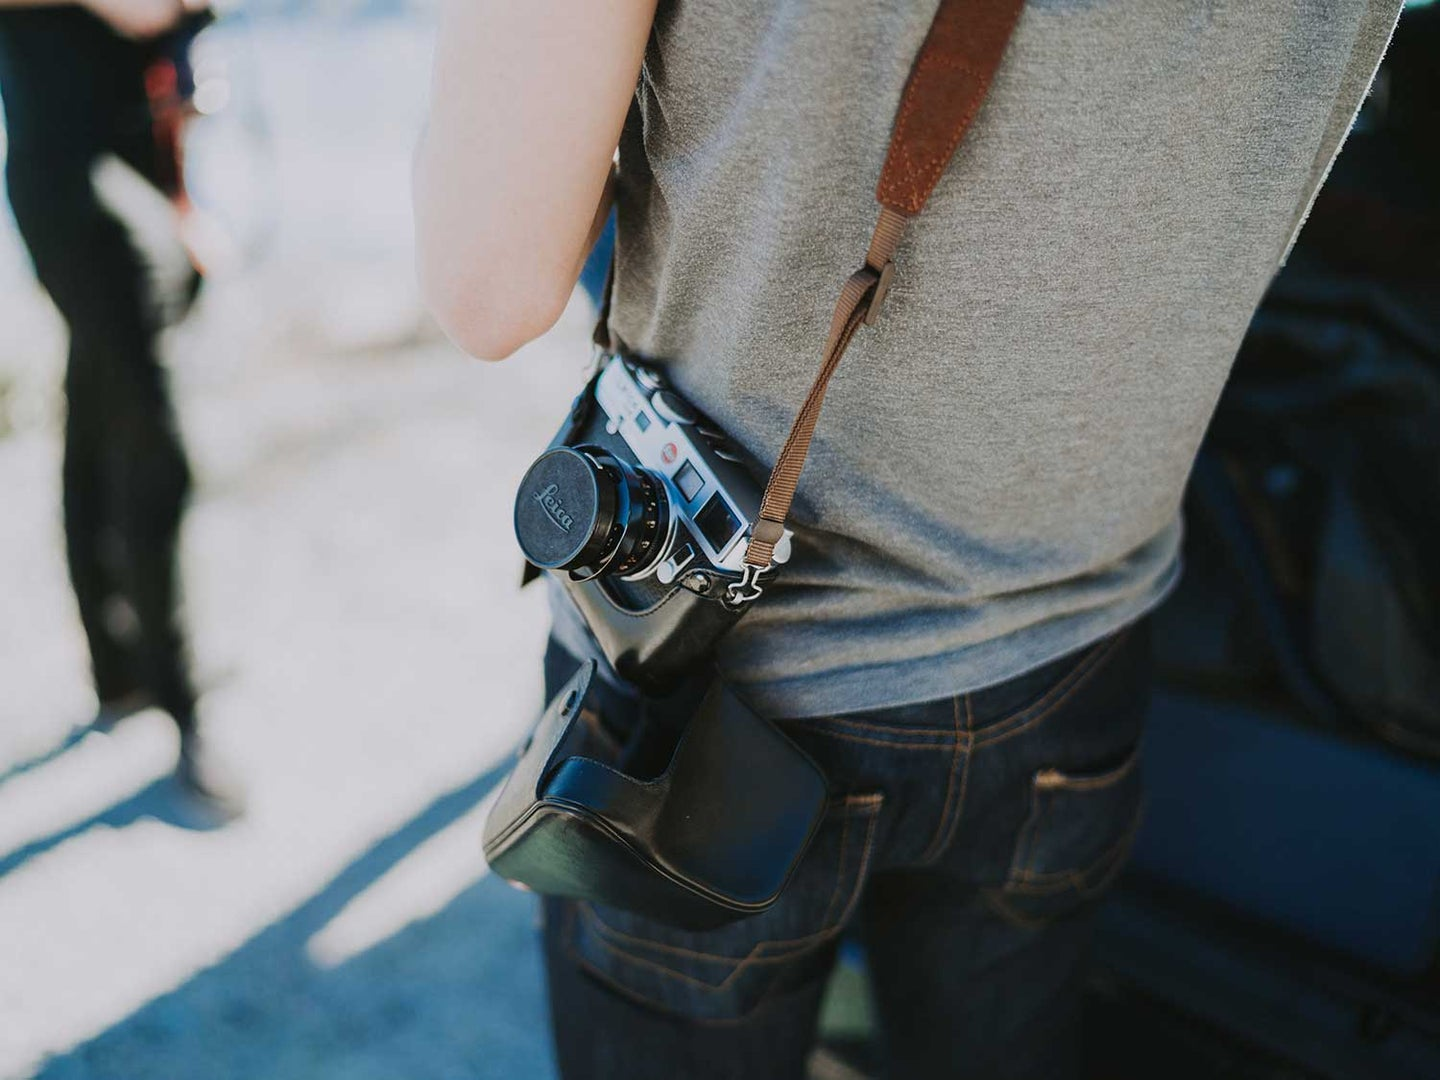 Man wearing jeans with camera.